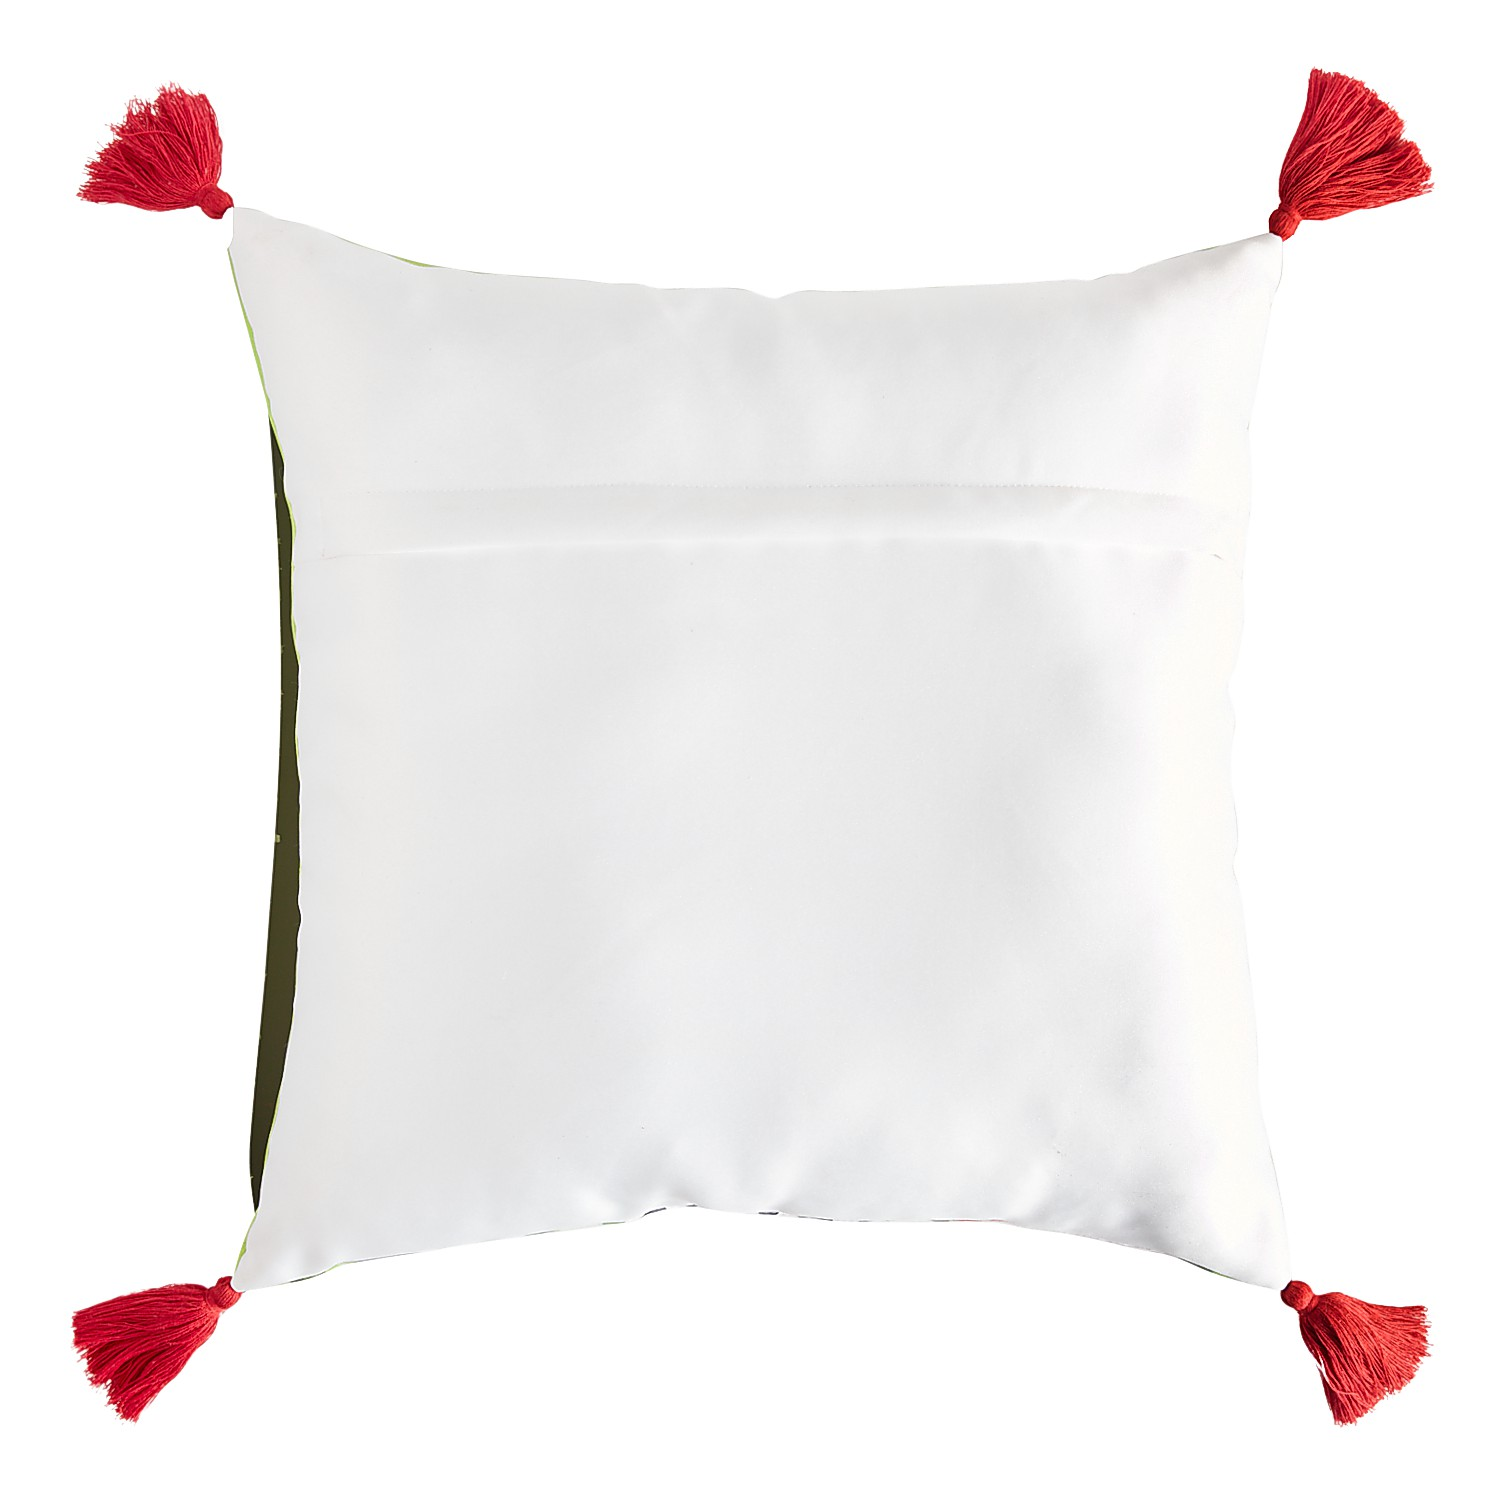 Cat Hats Pillow with Tassels